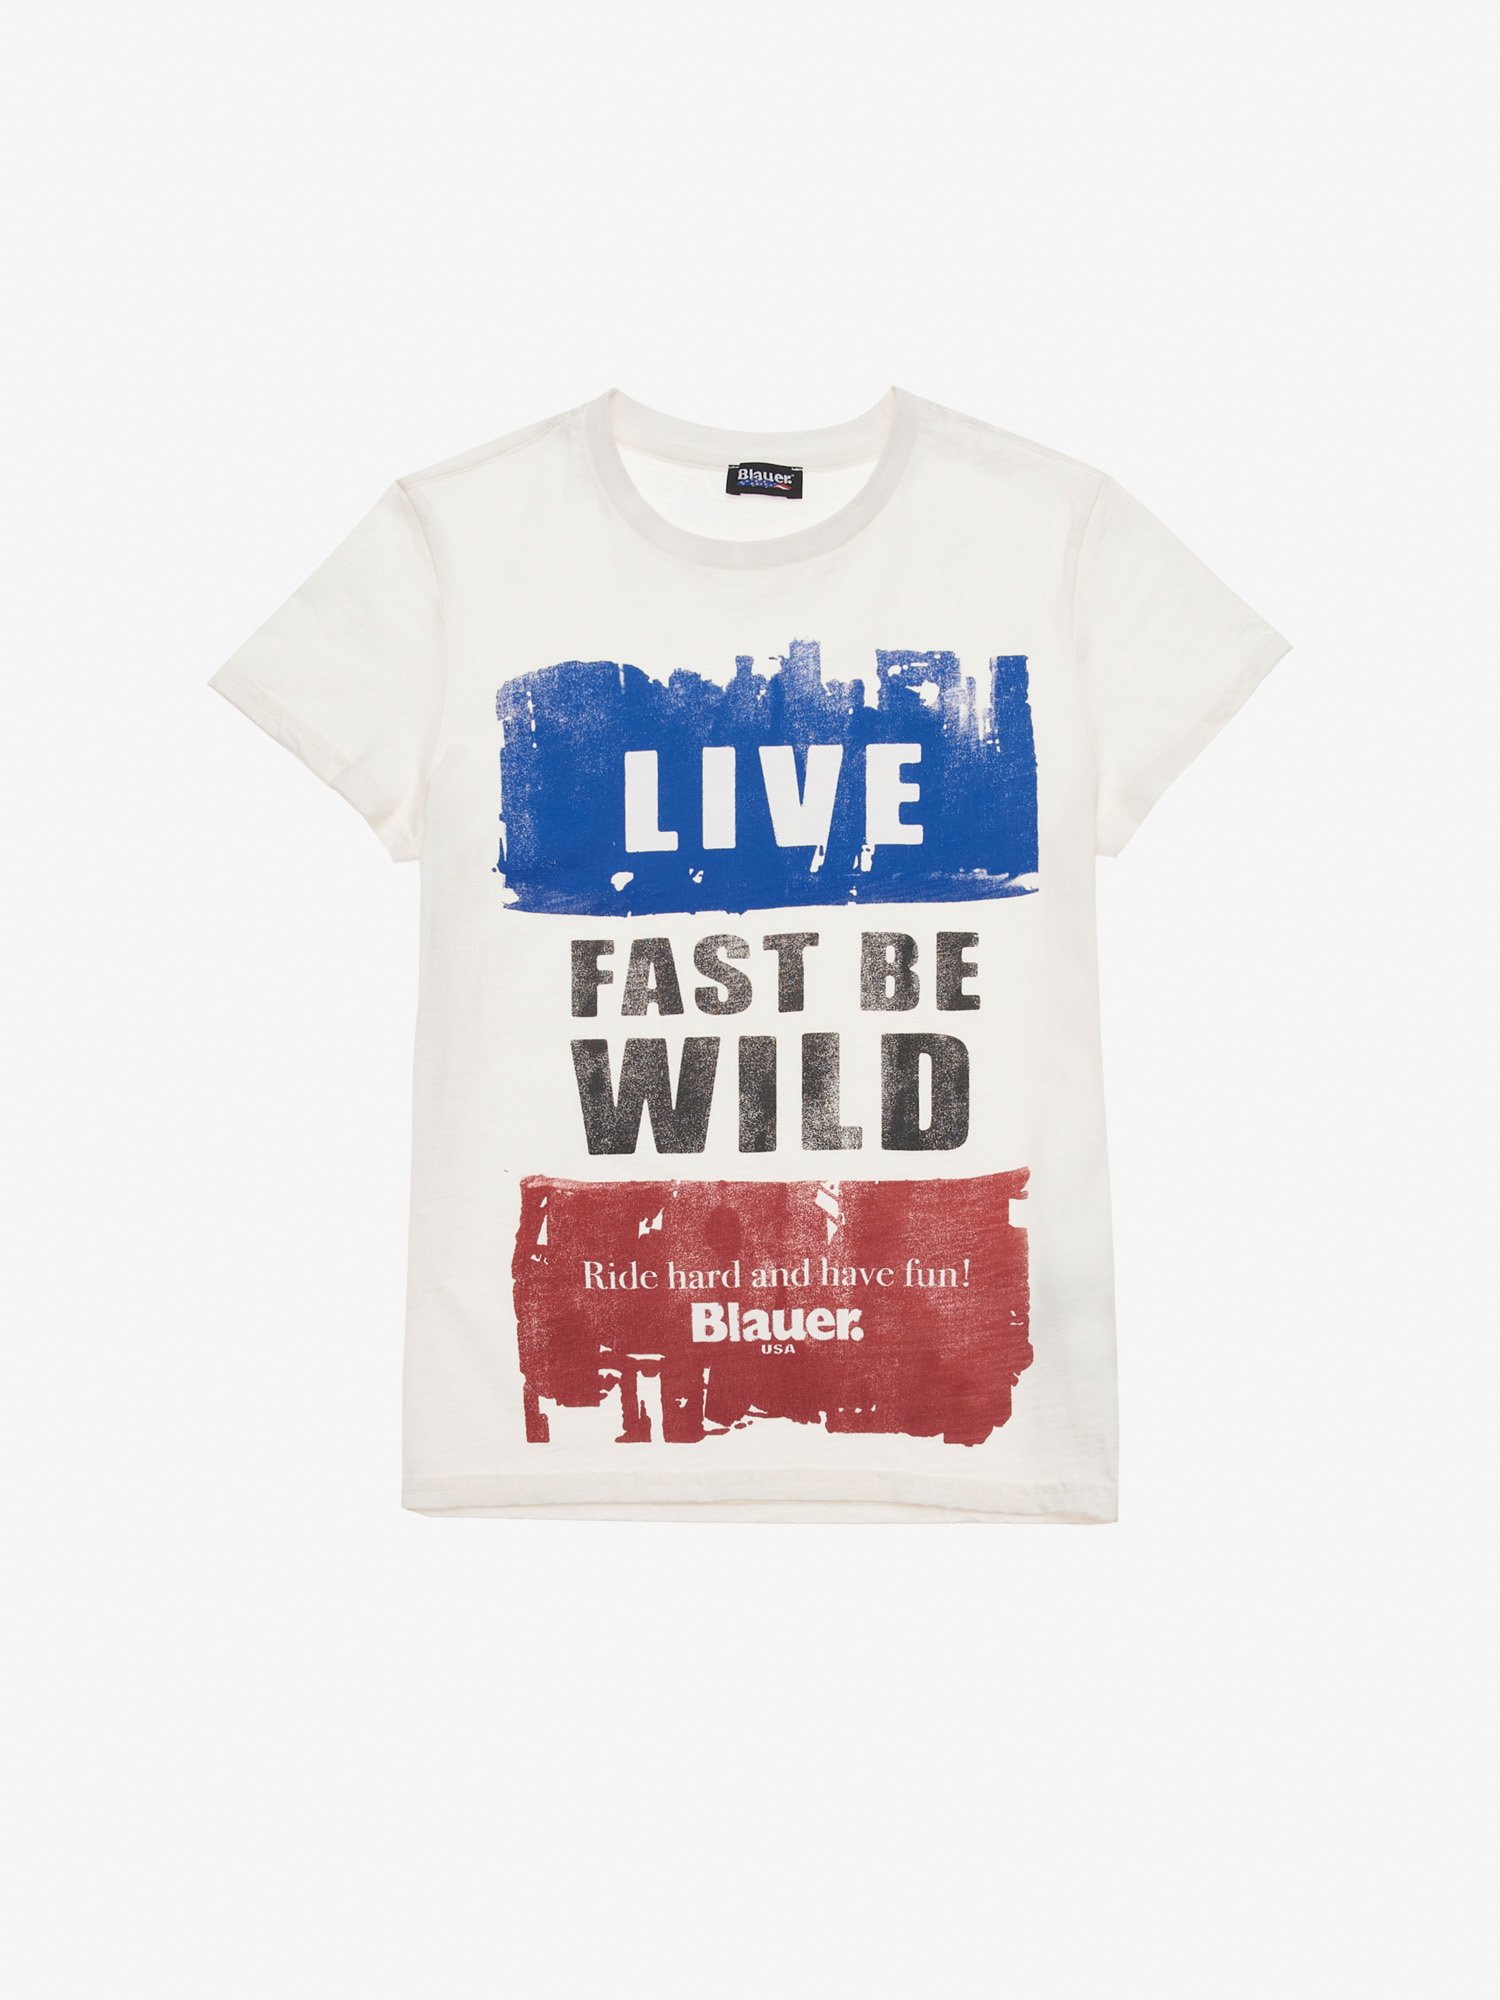 JUNIOR LIVE FAST BE WILD T-SHIRT - Blauer